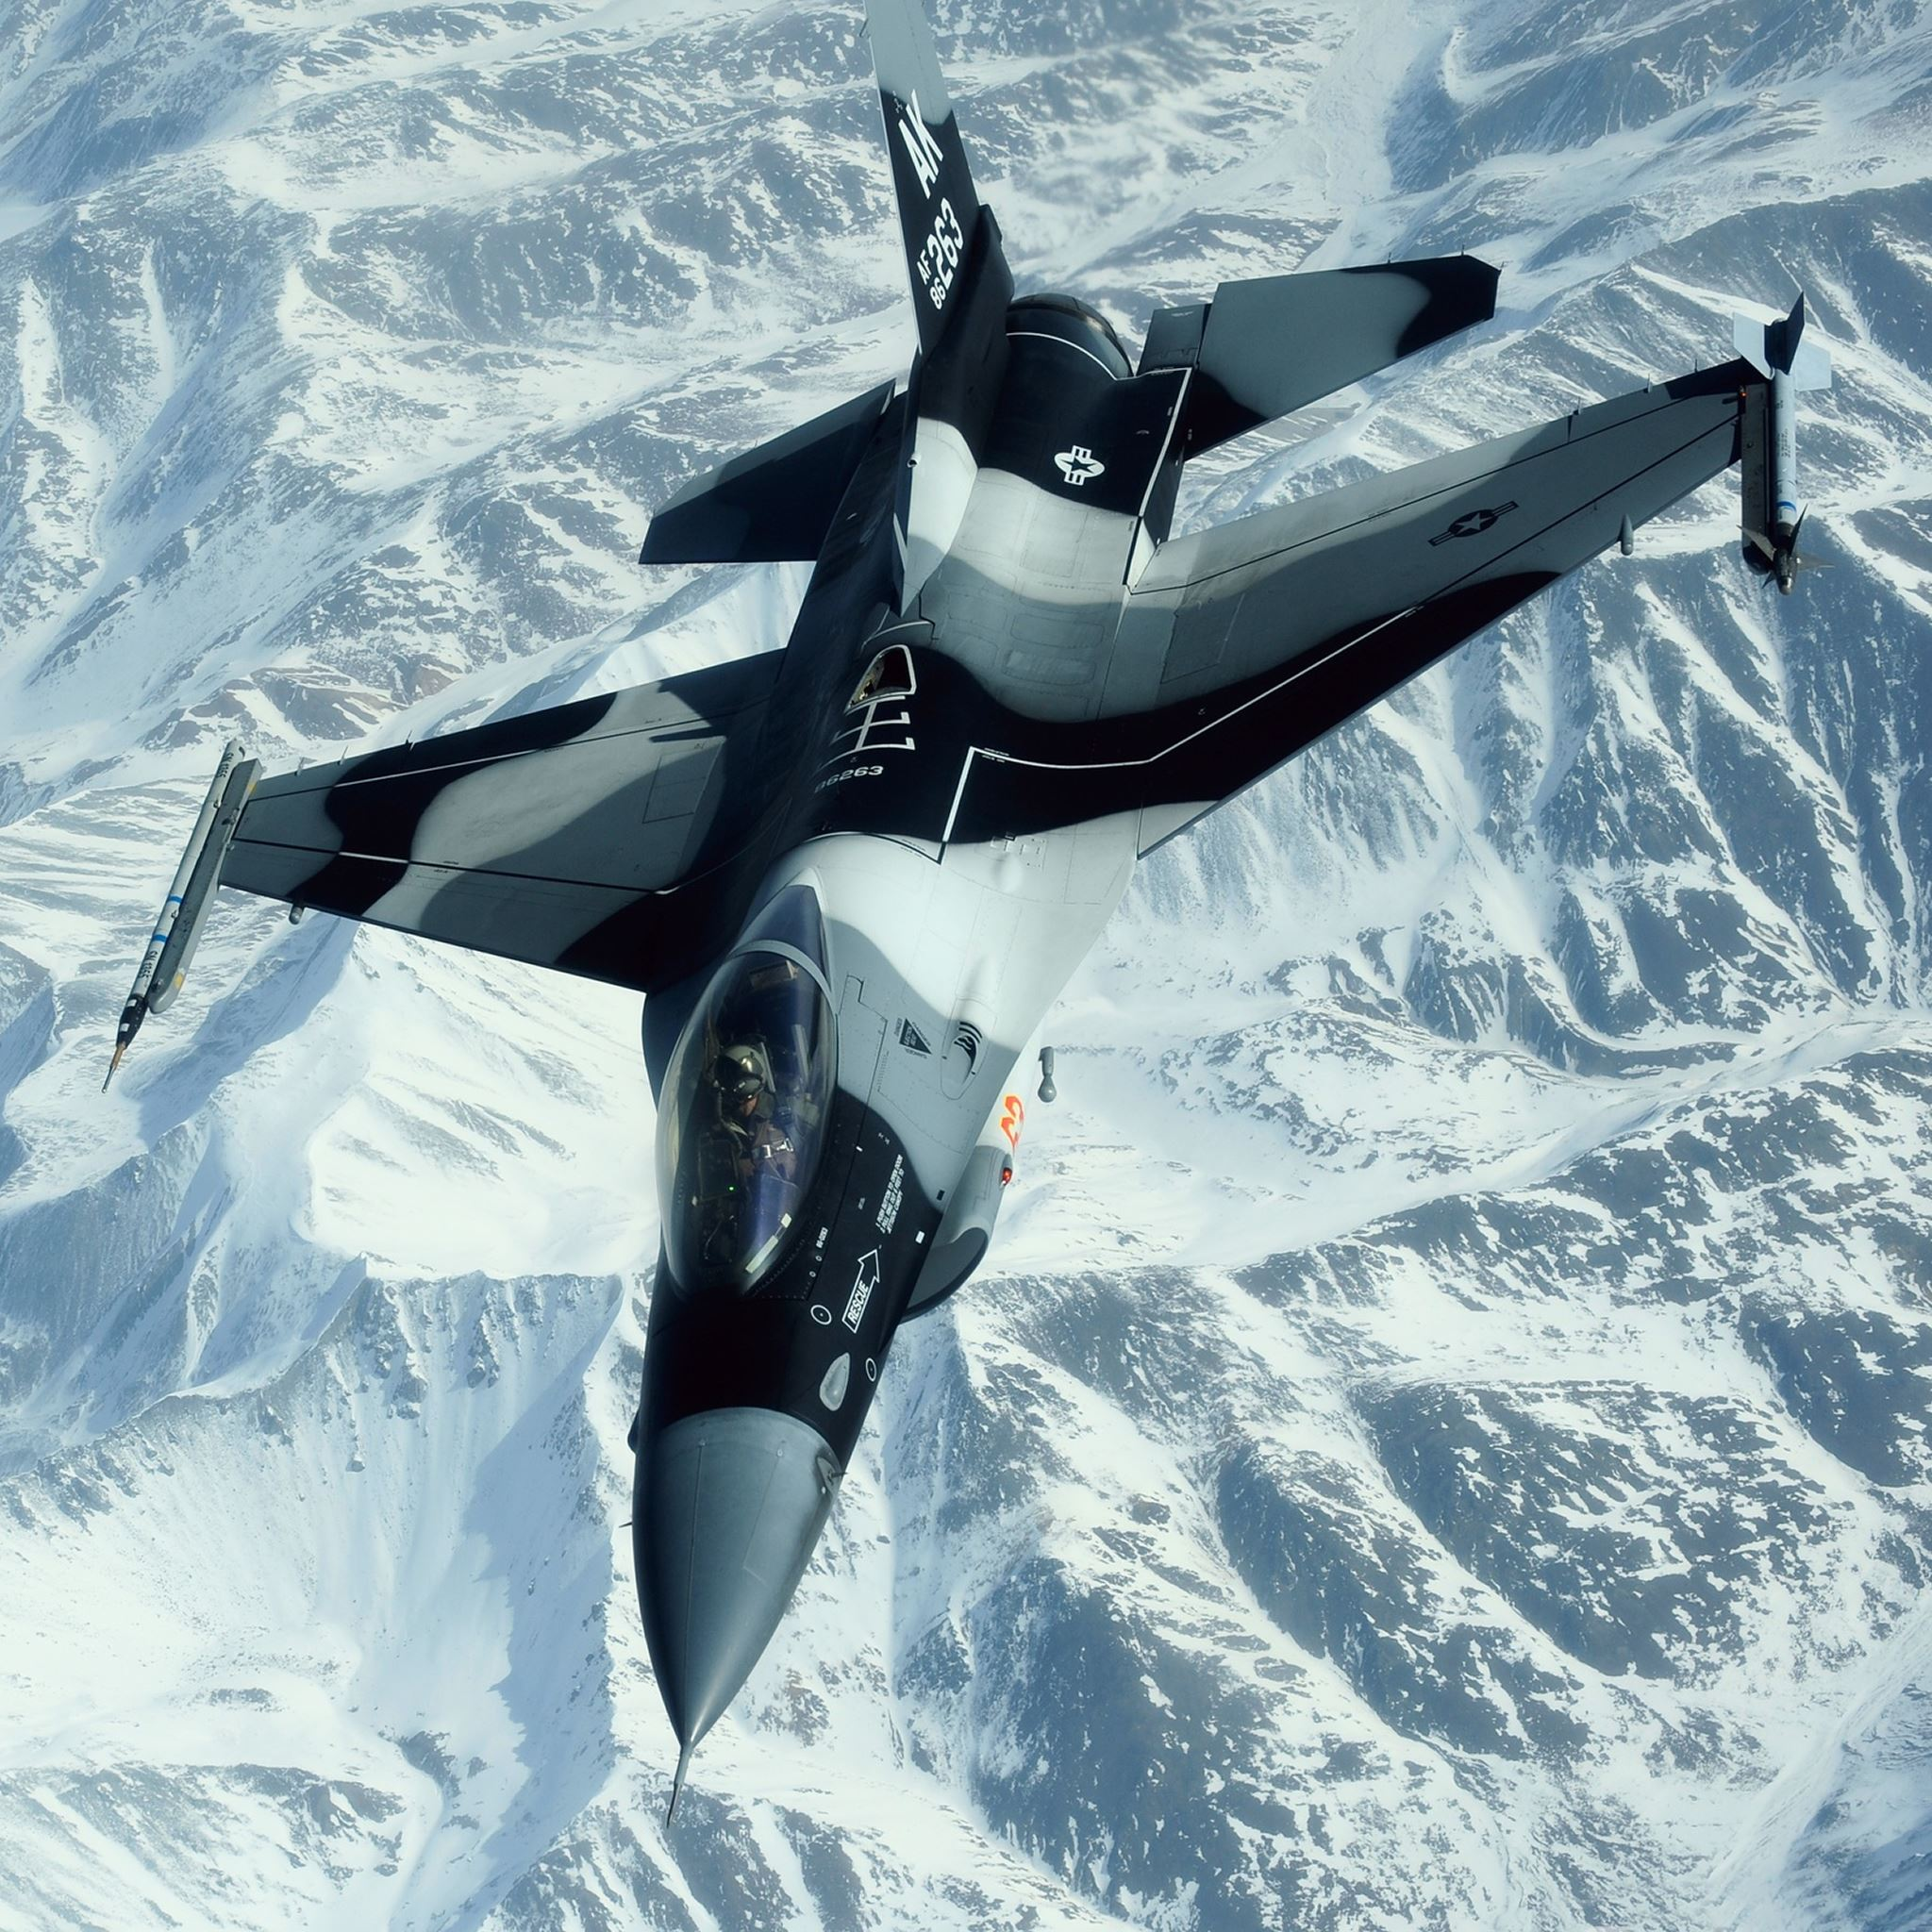 Military Aircraft iPad Air wallpaper